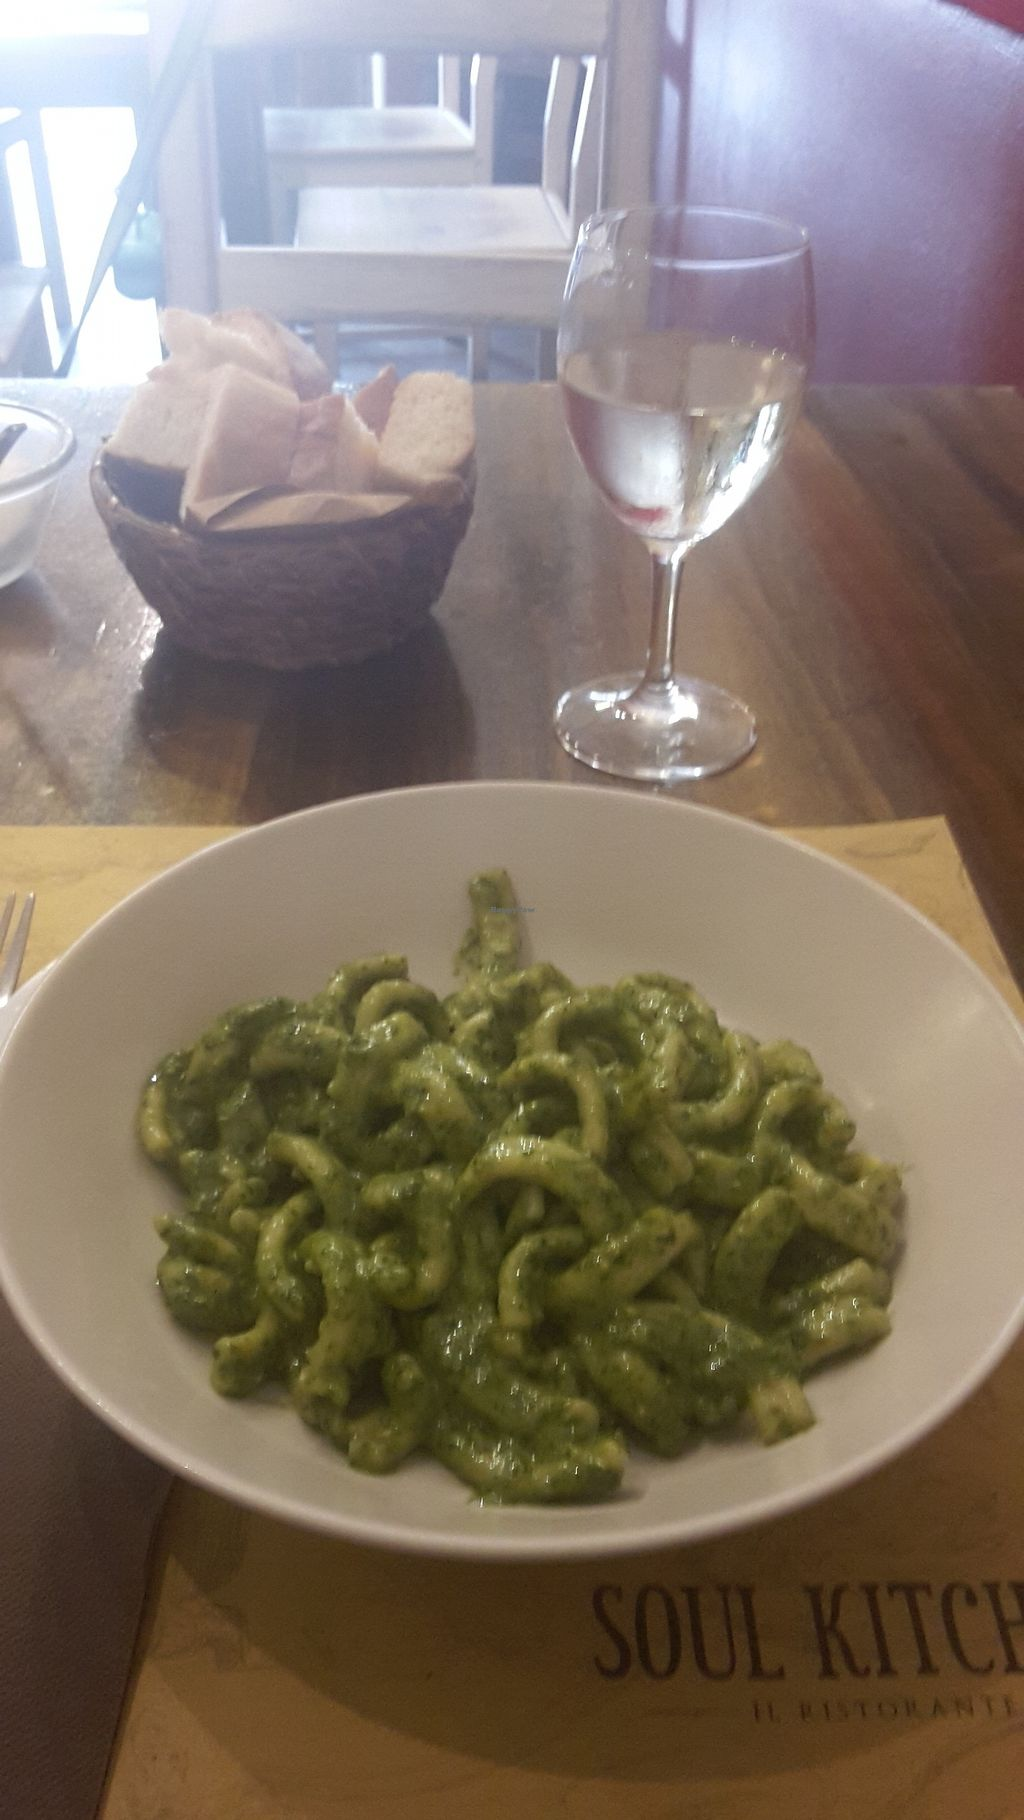 """Photo of Soul Kitchen  by <a href=""""/members/profile/LaurenceFWI"""">LaurenceFWI</a> <br/>A delicious pesto pasta plate! <br/> August 30, 2017  - <a href='/contact/abuse/image/99221/299222'>Report</a>"""